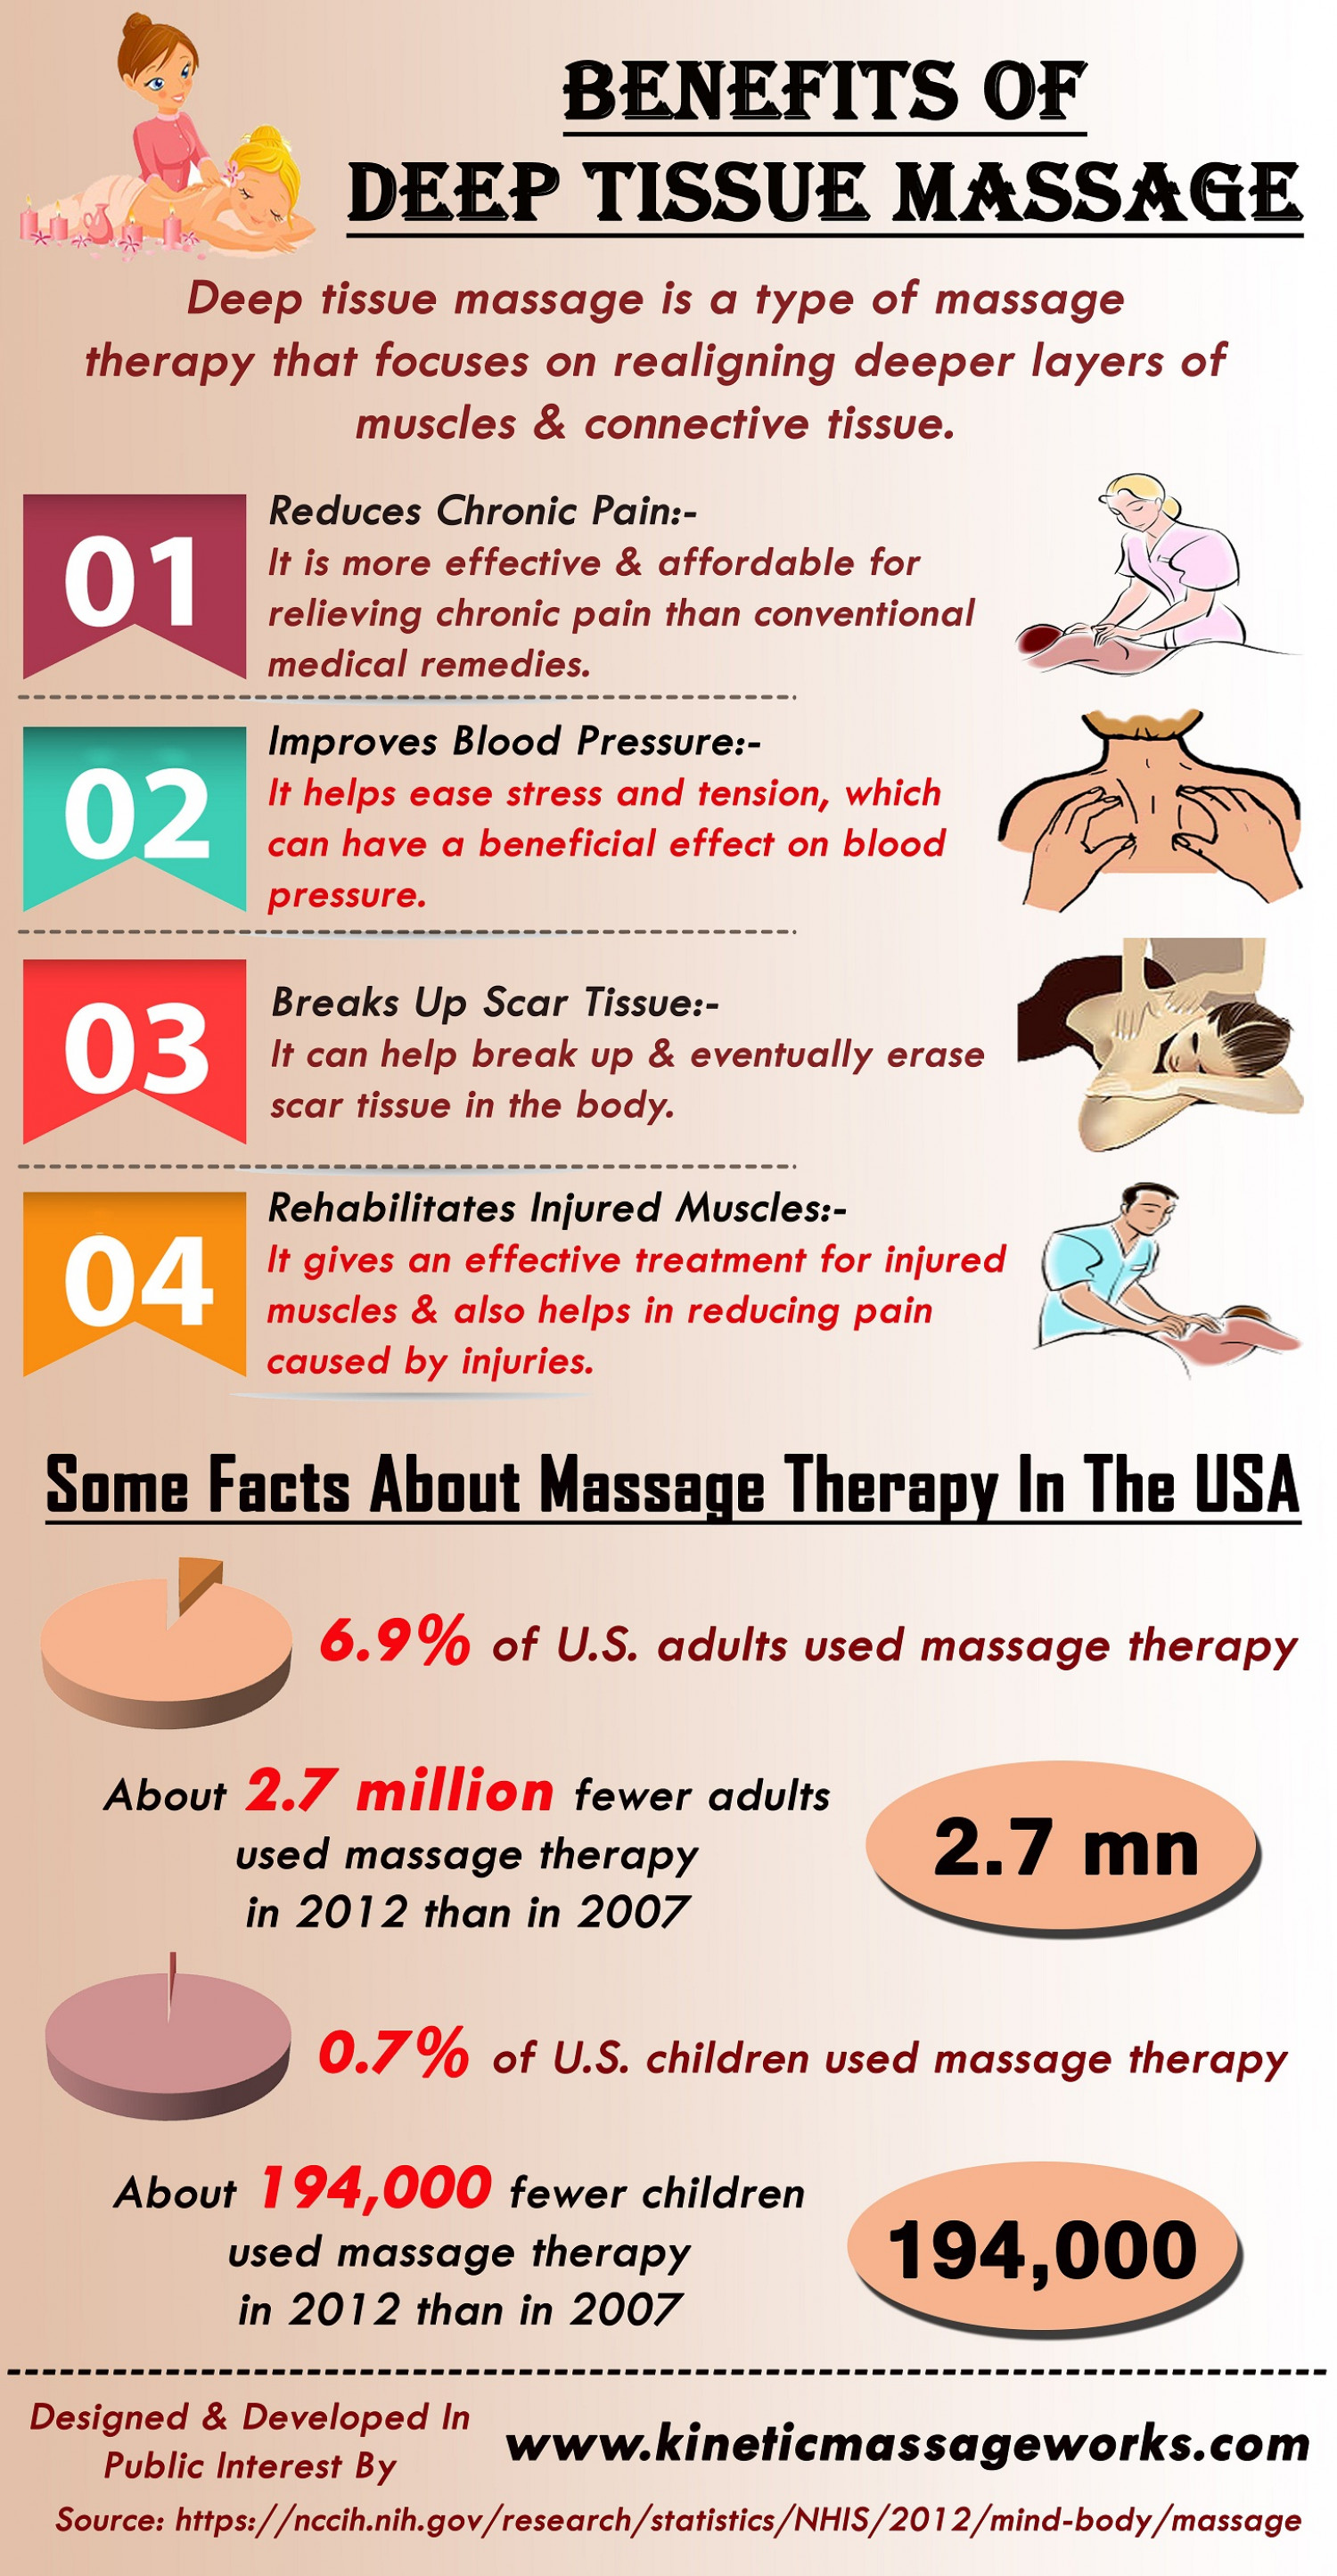 benefits of massage The benefits of massage are varied and far-reaching as an accepted part of  many rehabilitation programs, massage therapy has also proven beneficial for.